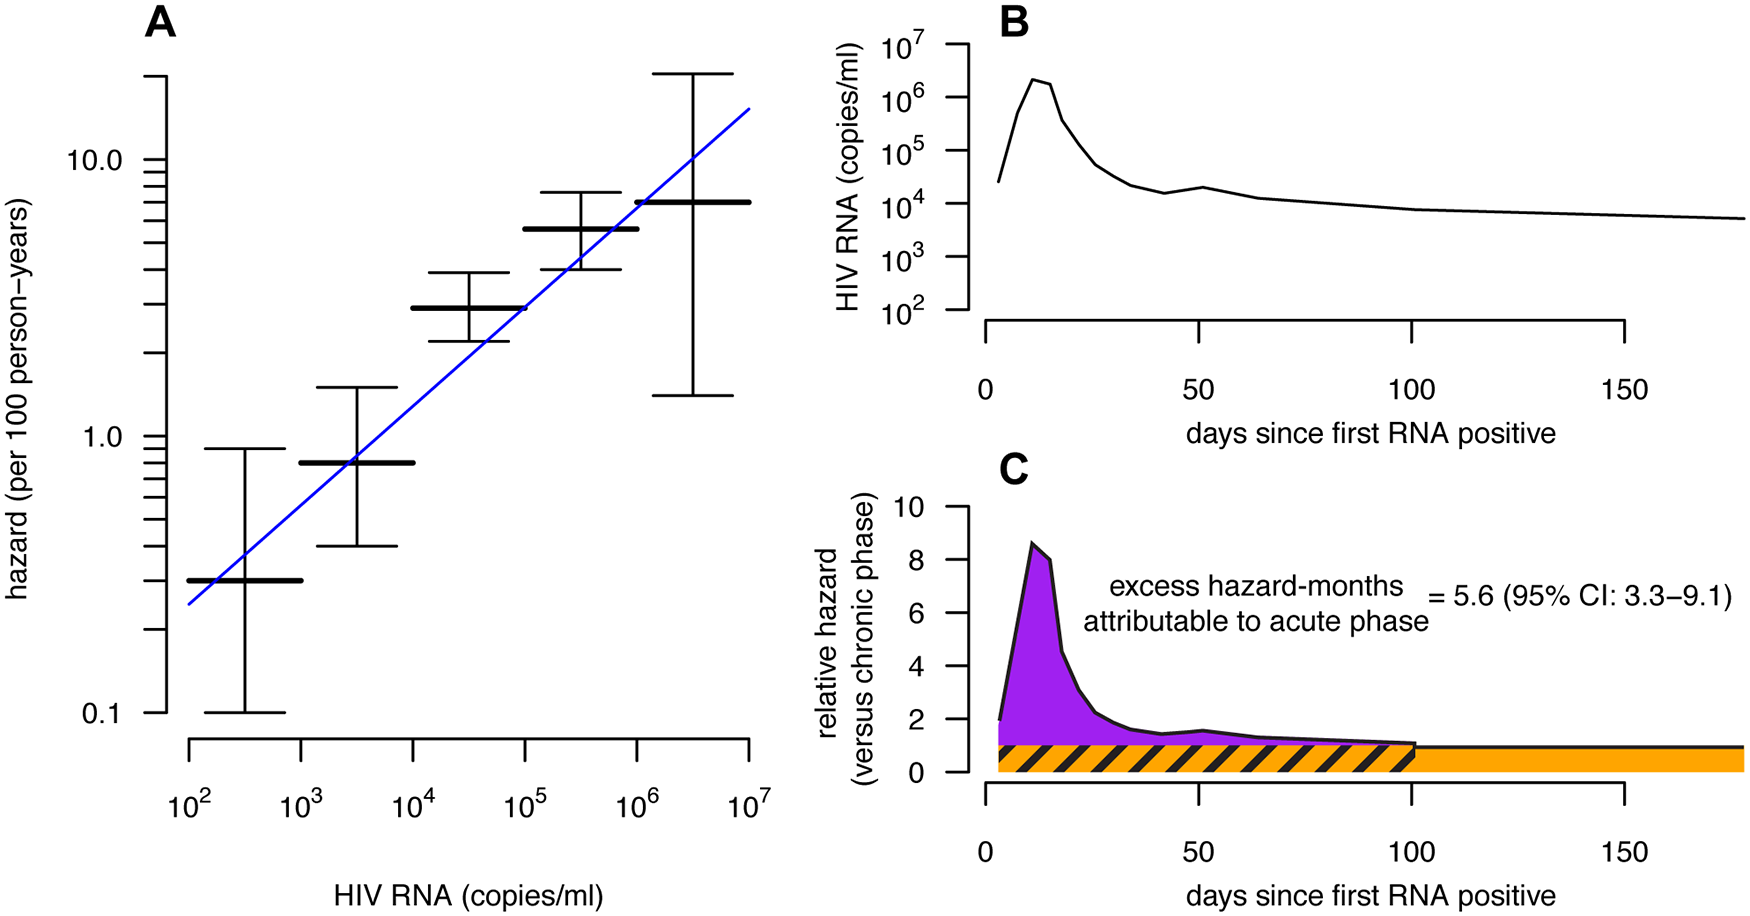 Viral-load-based estimates of excess hazard-months due to the acute phase.